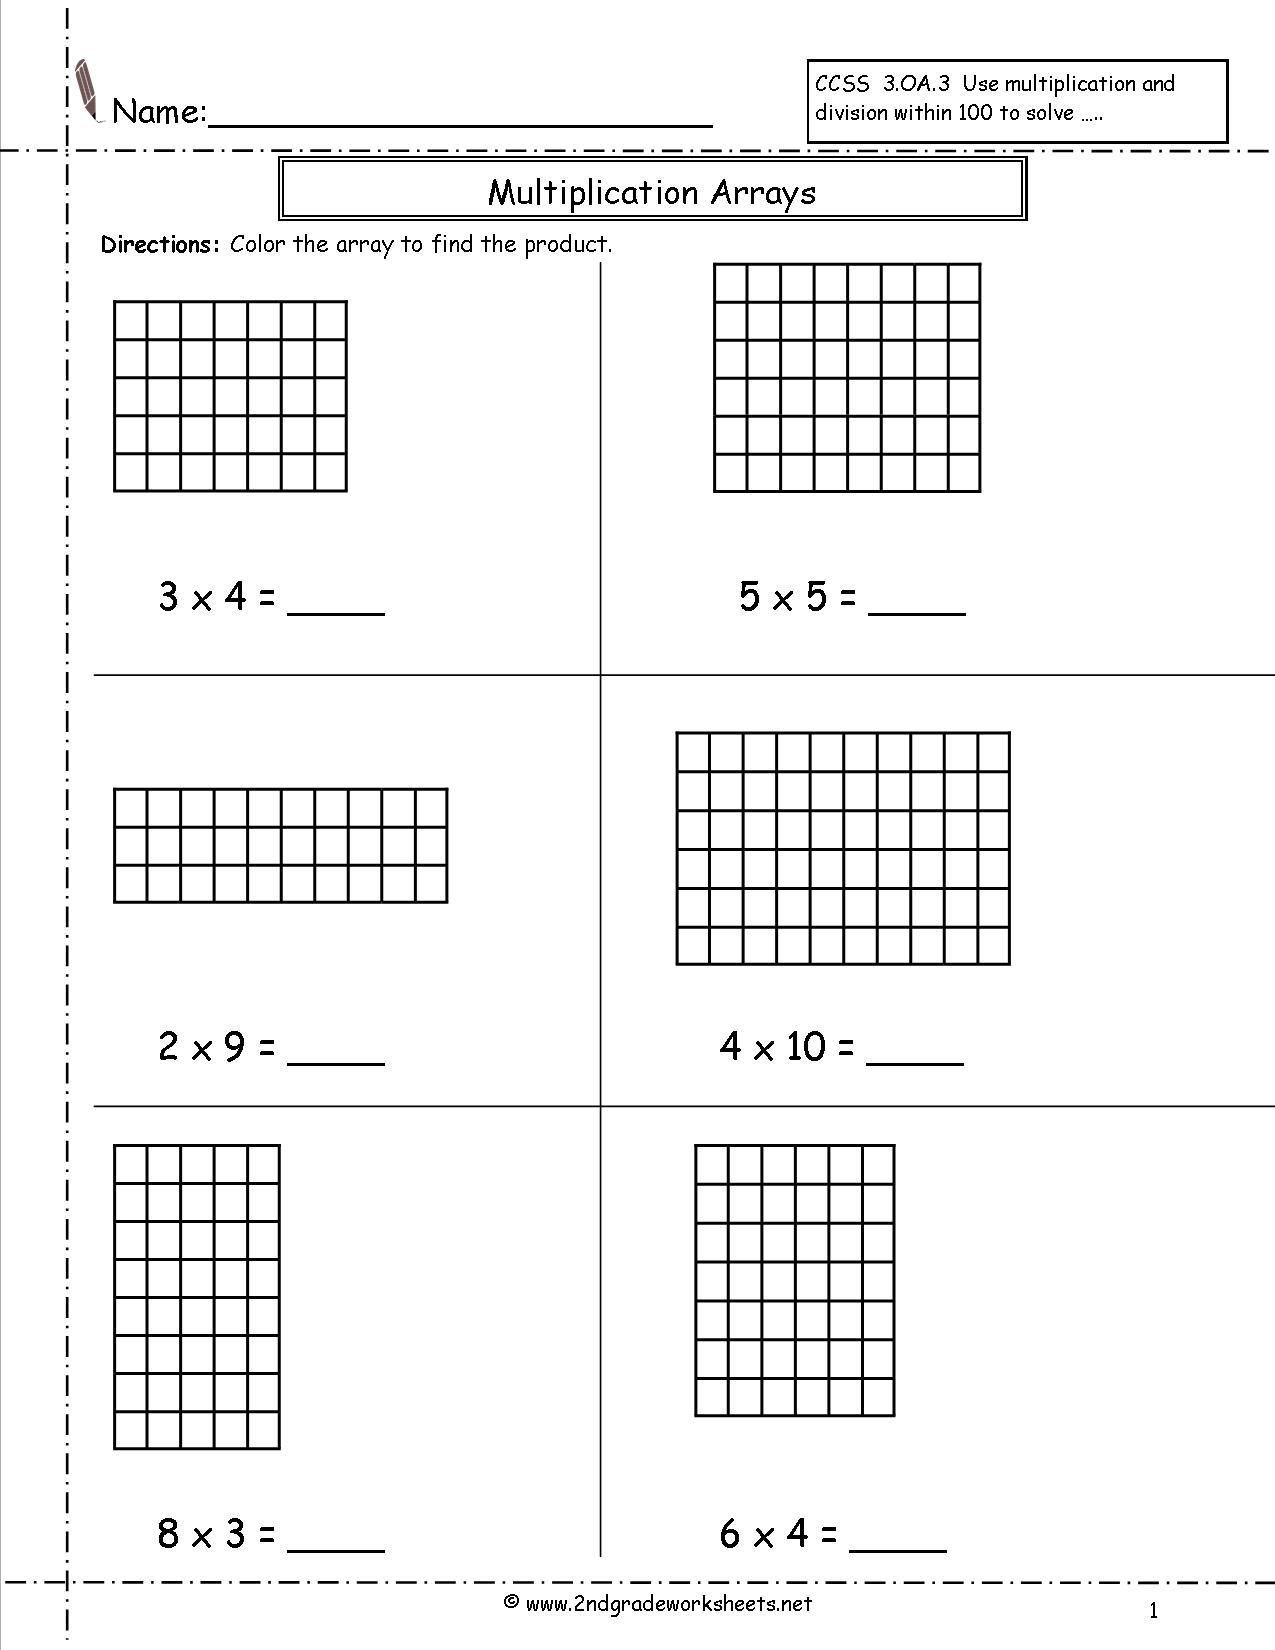 arrays worksheets Multiplication Arrays Worksheets – Multiplication Models Worksheets